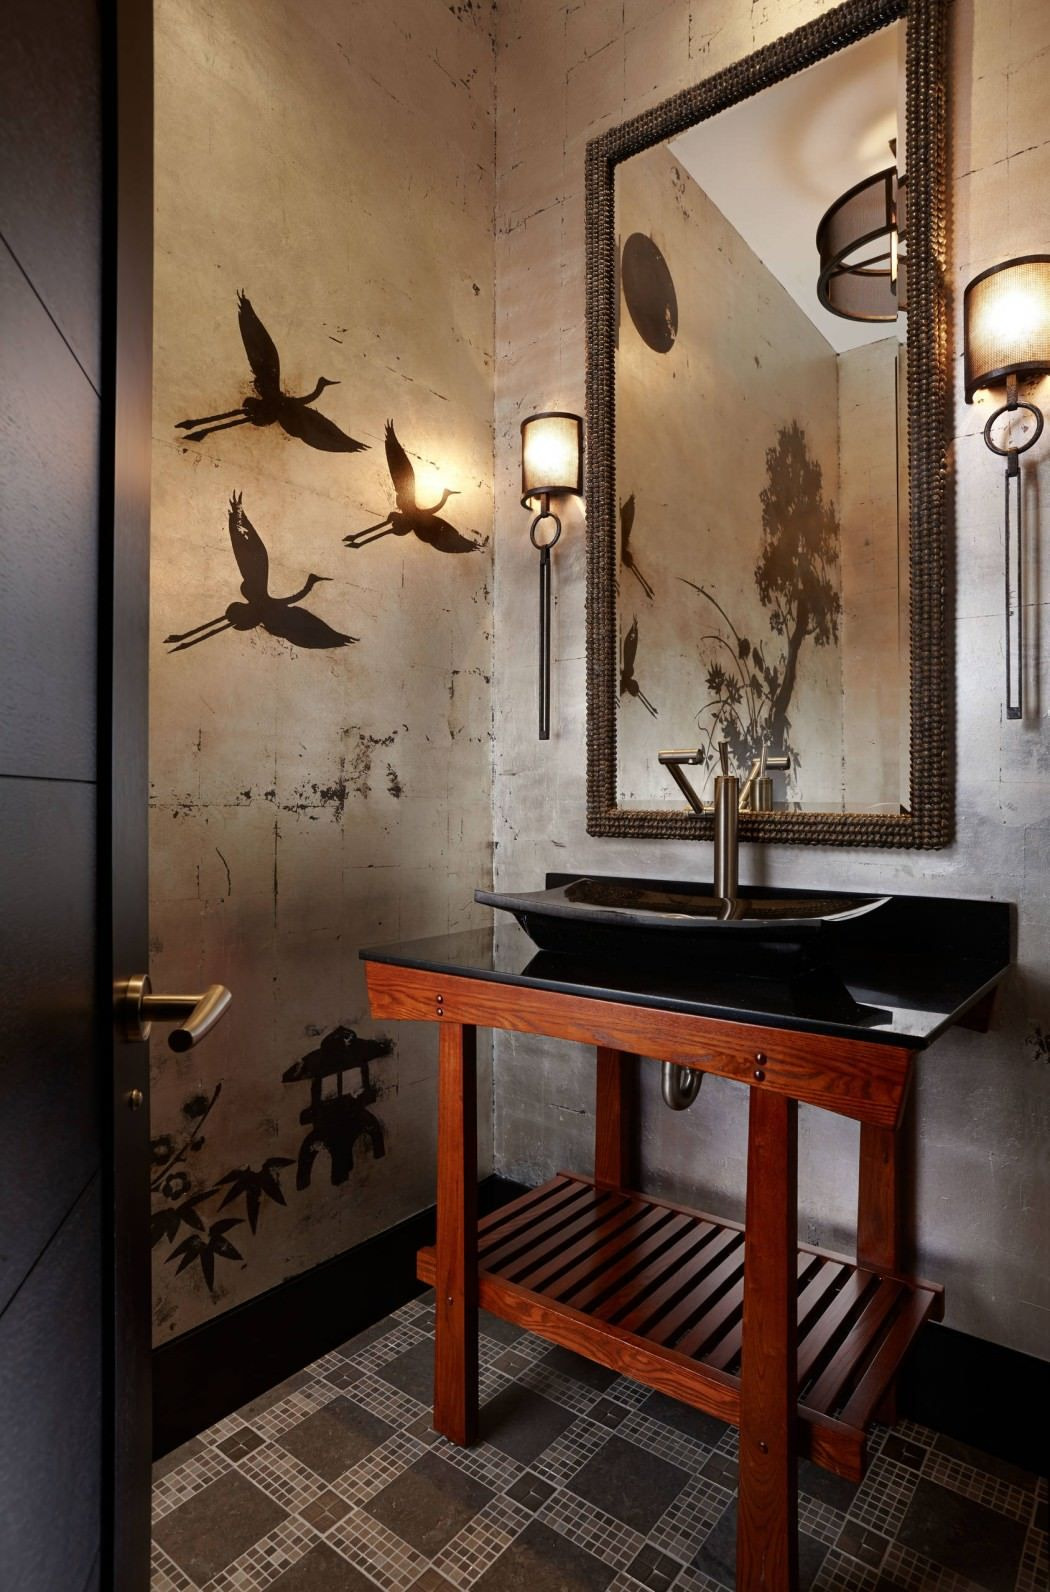 new asian bathroom decor modern with wooden wall and large home